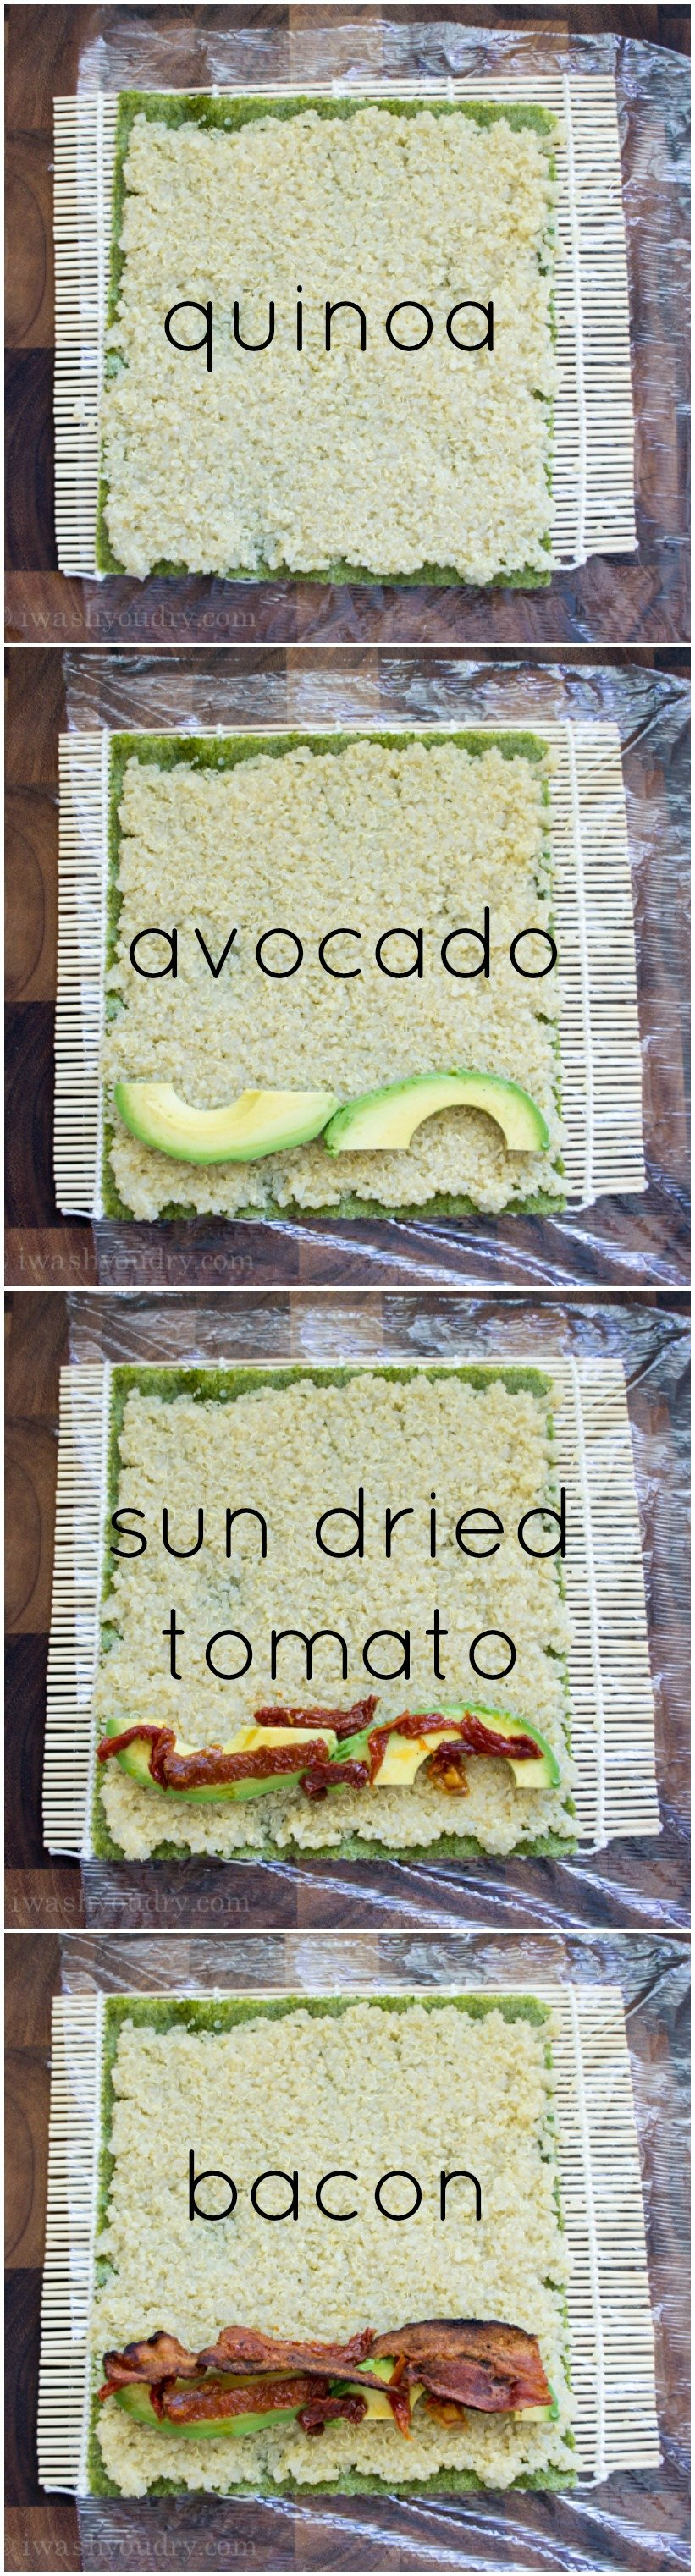 Avocado Sushi Filling